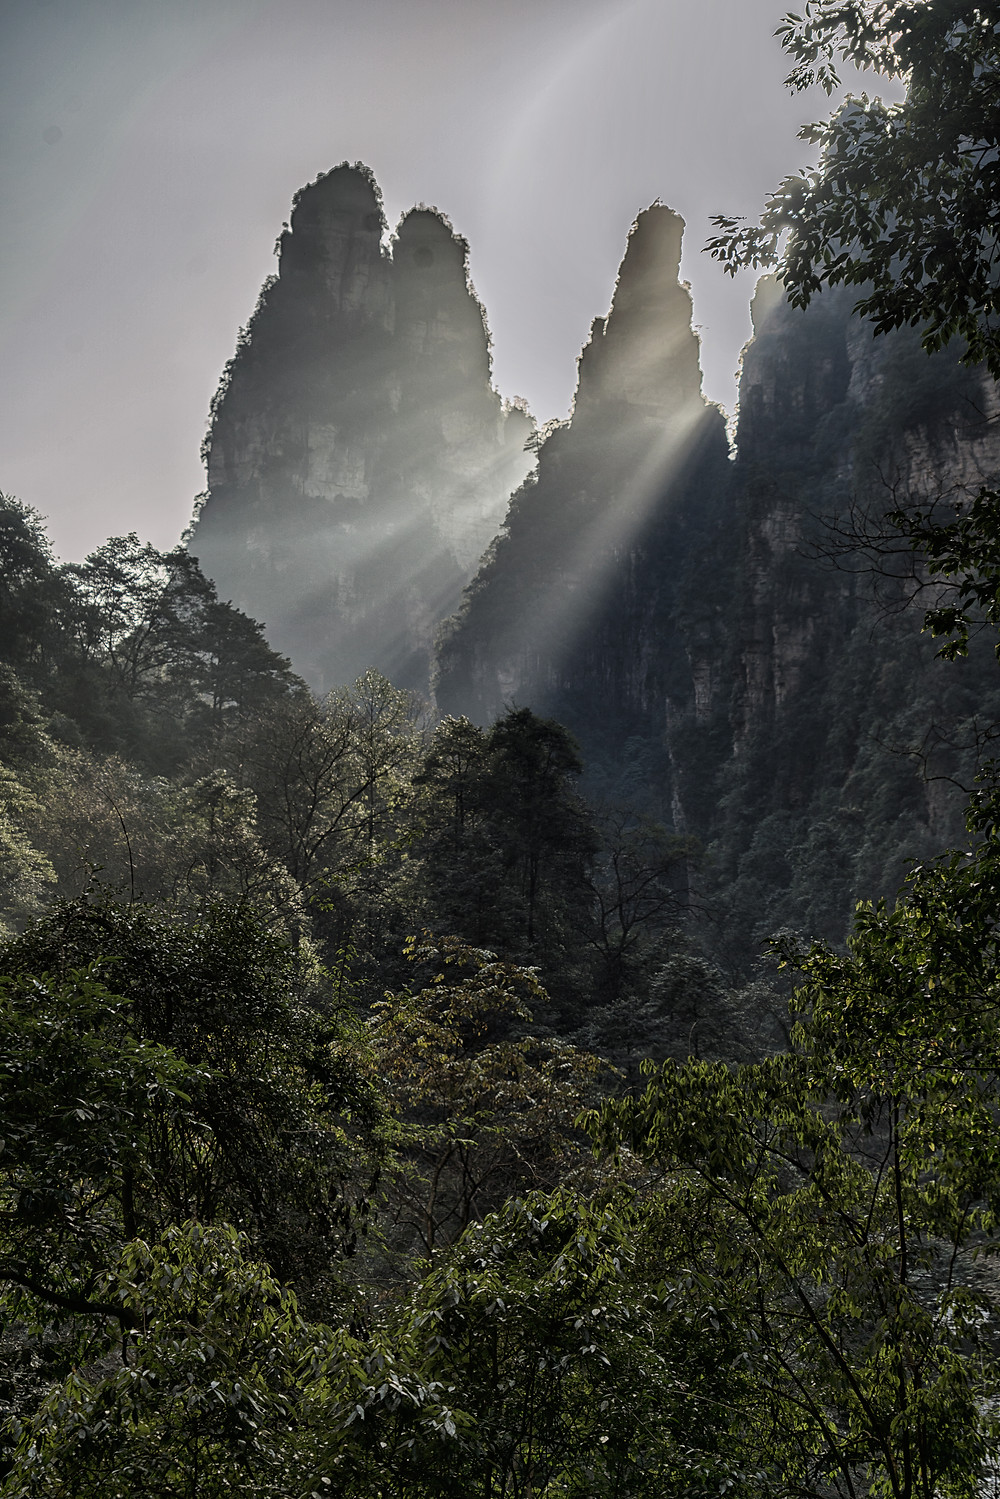 Sunlight in Zhangjiajie